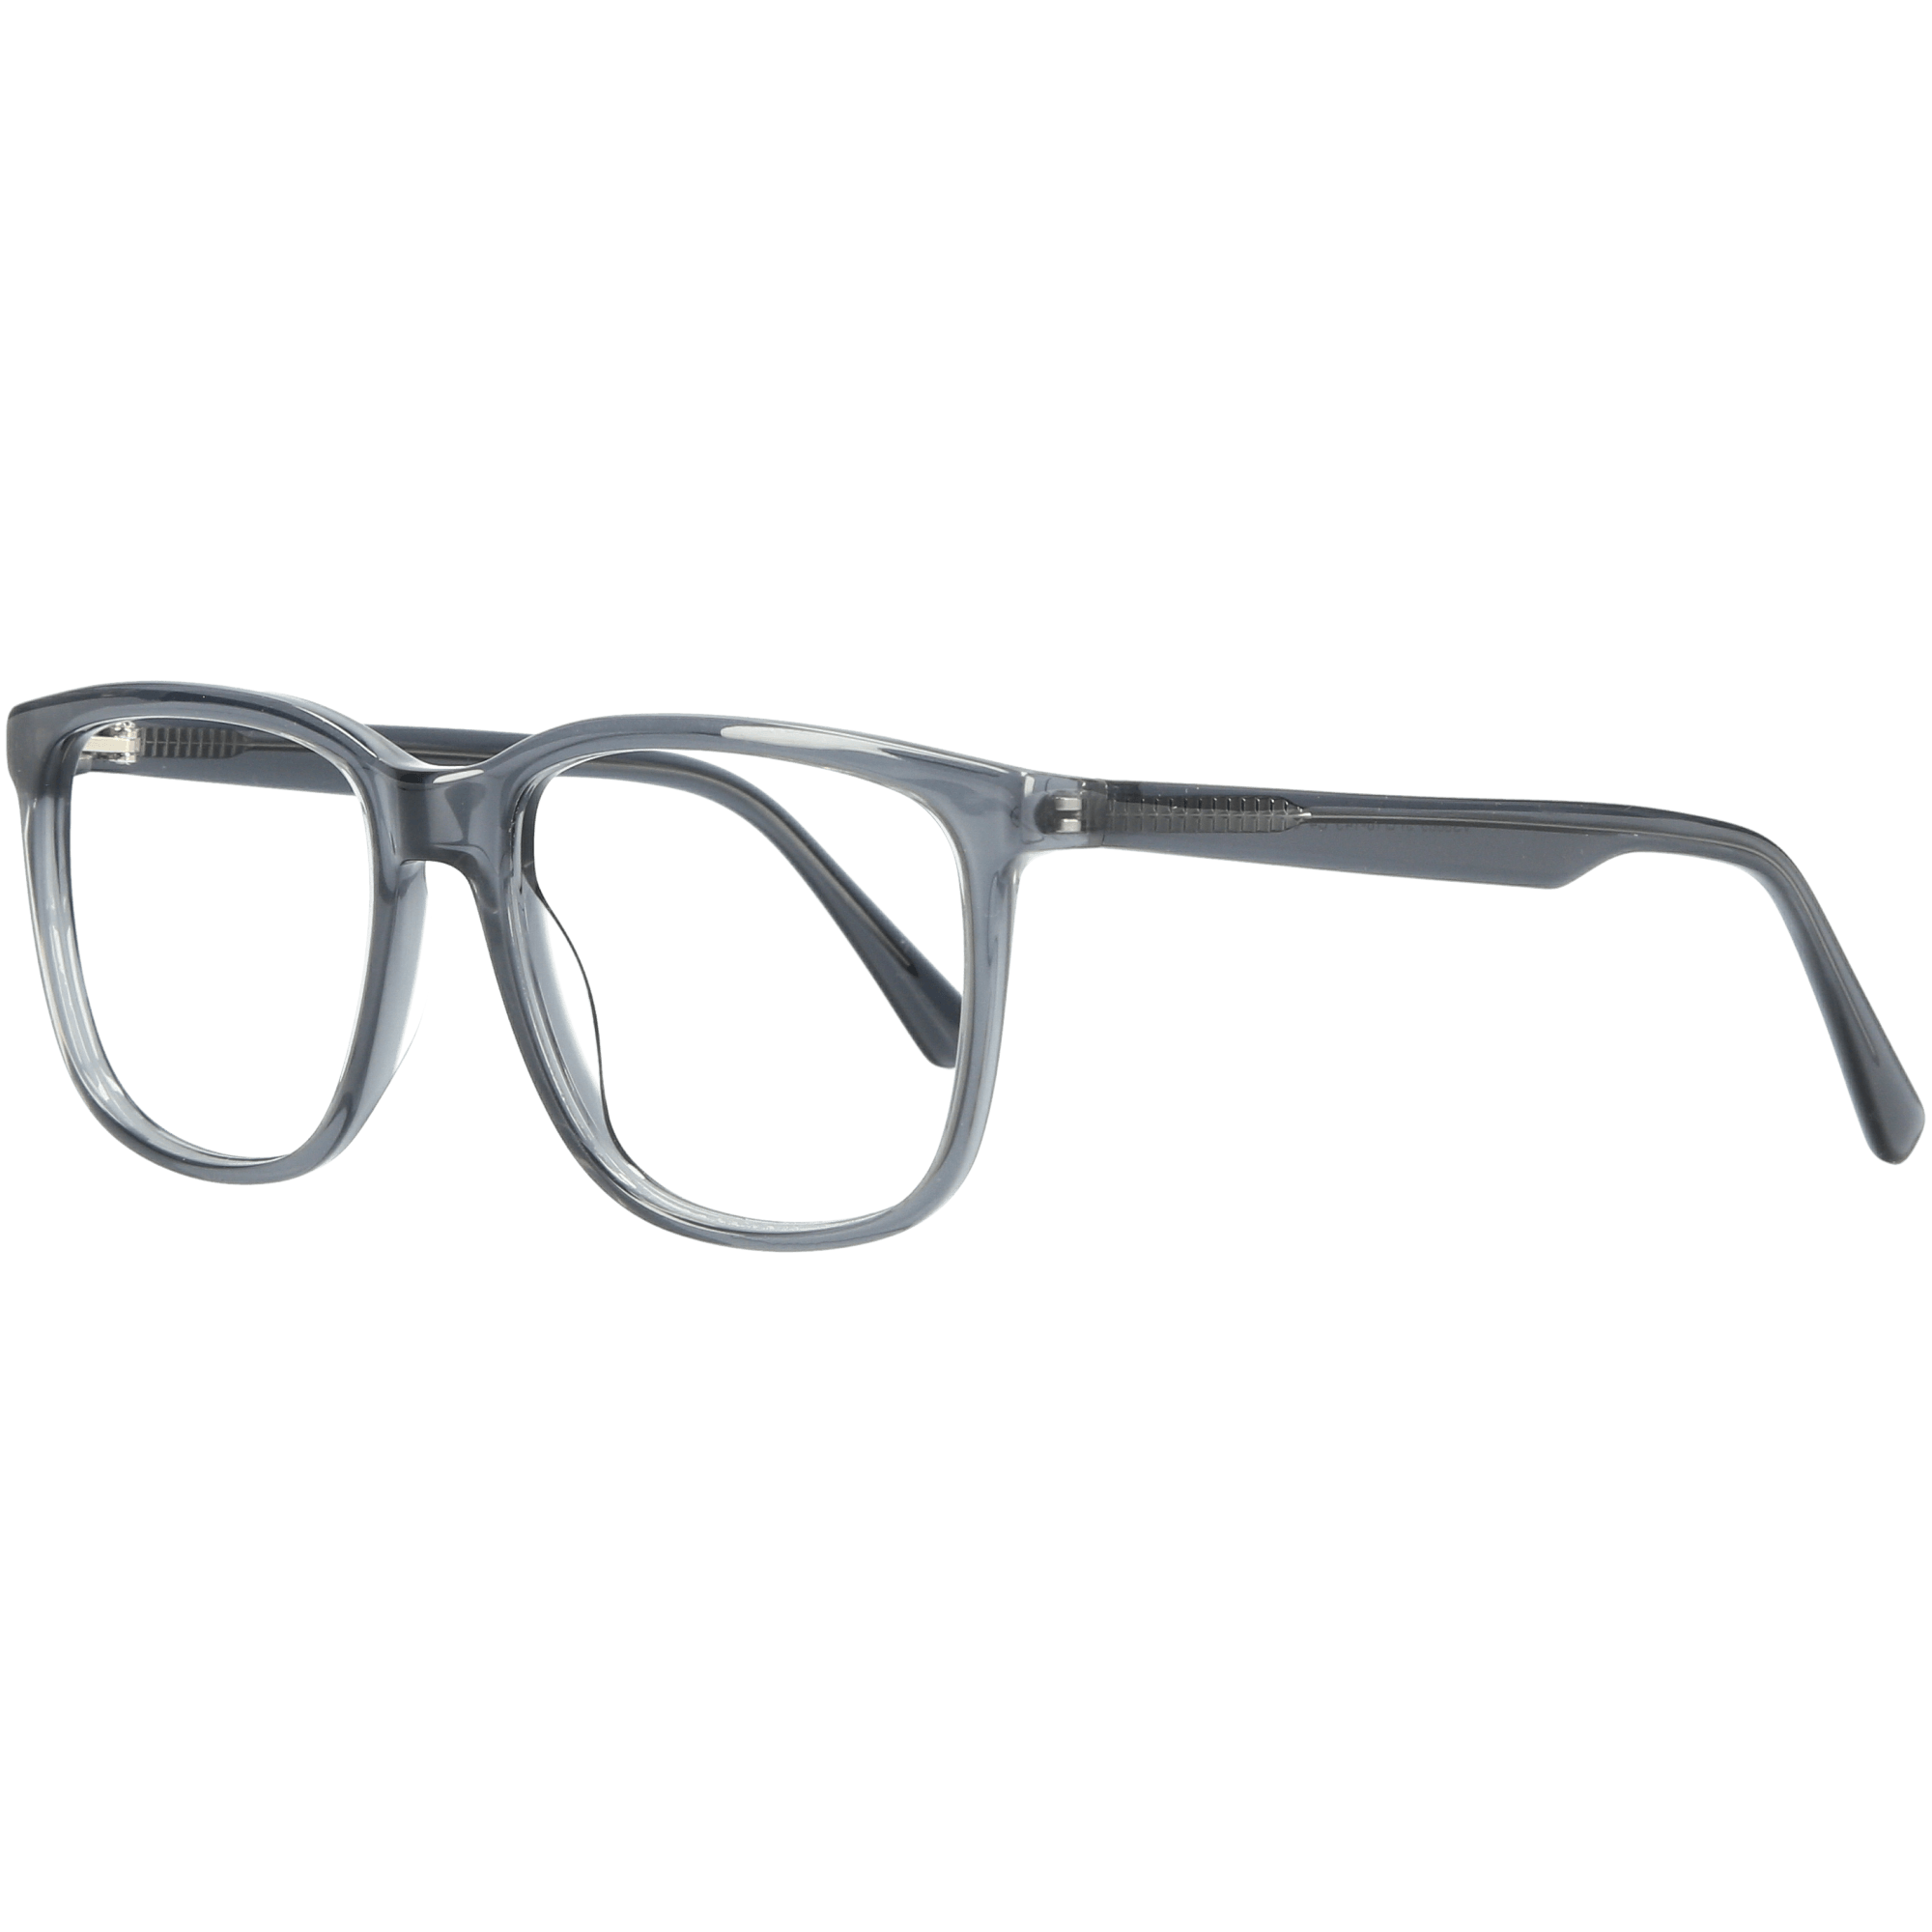 HOFFMAN OPTICAL SAINT REETS